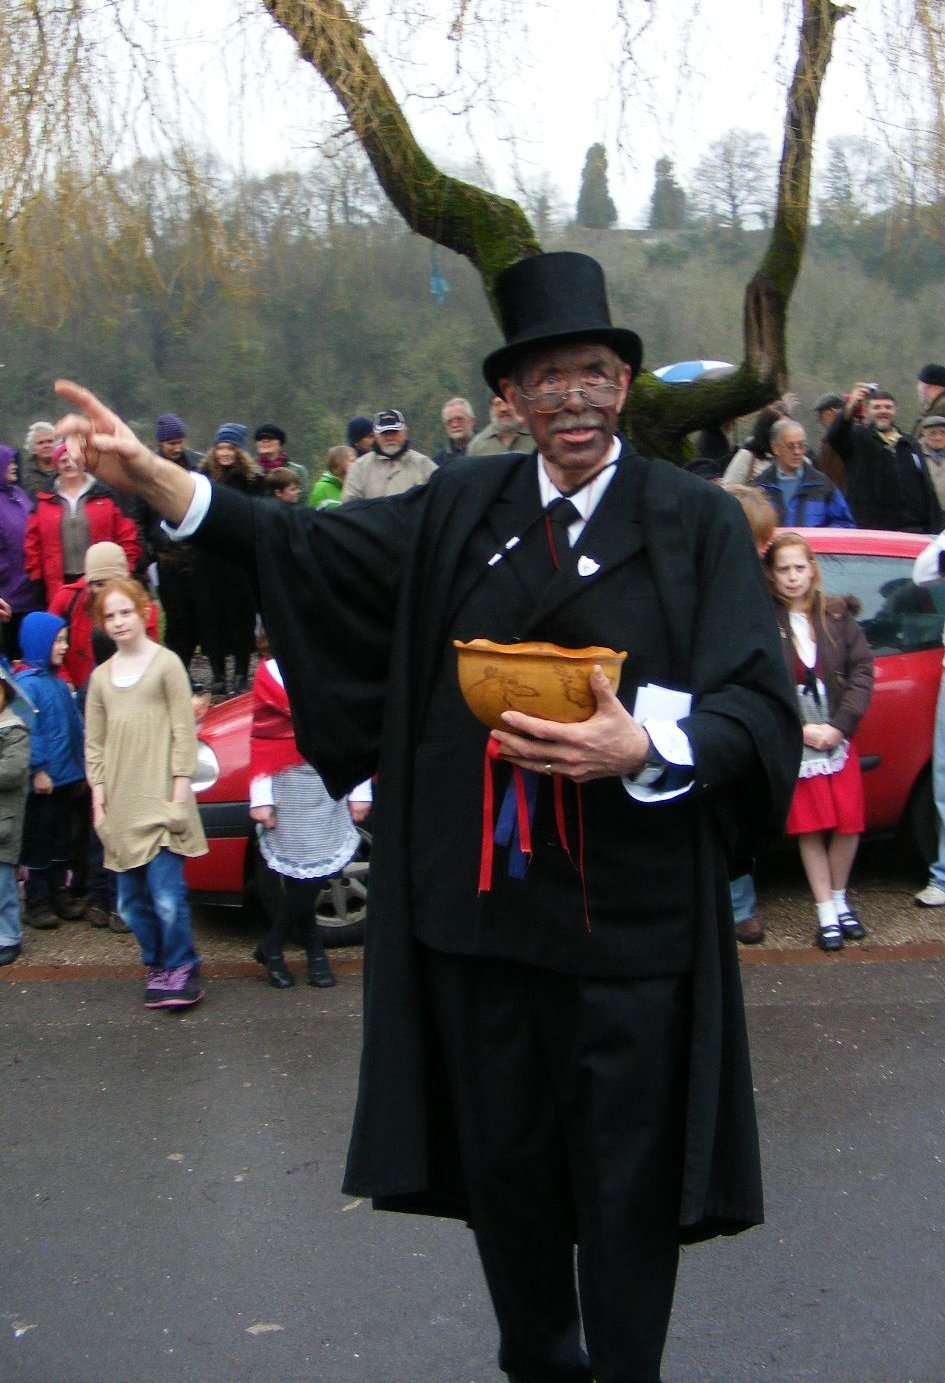 The wassail butler